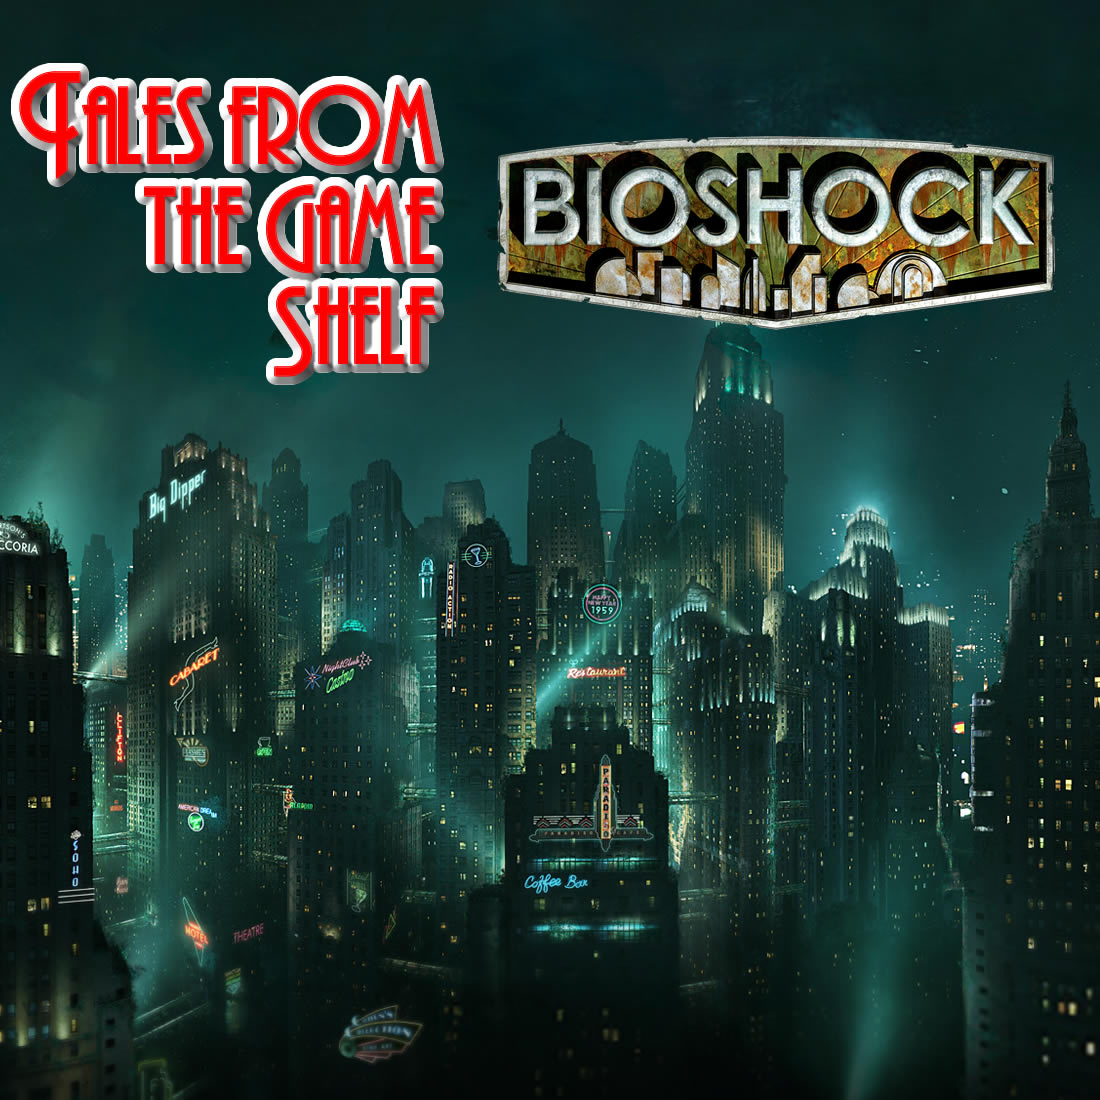 Tales From the Game Shelf – Episode 1: Bioshock